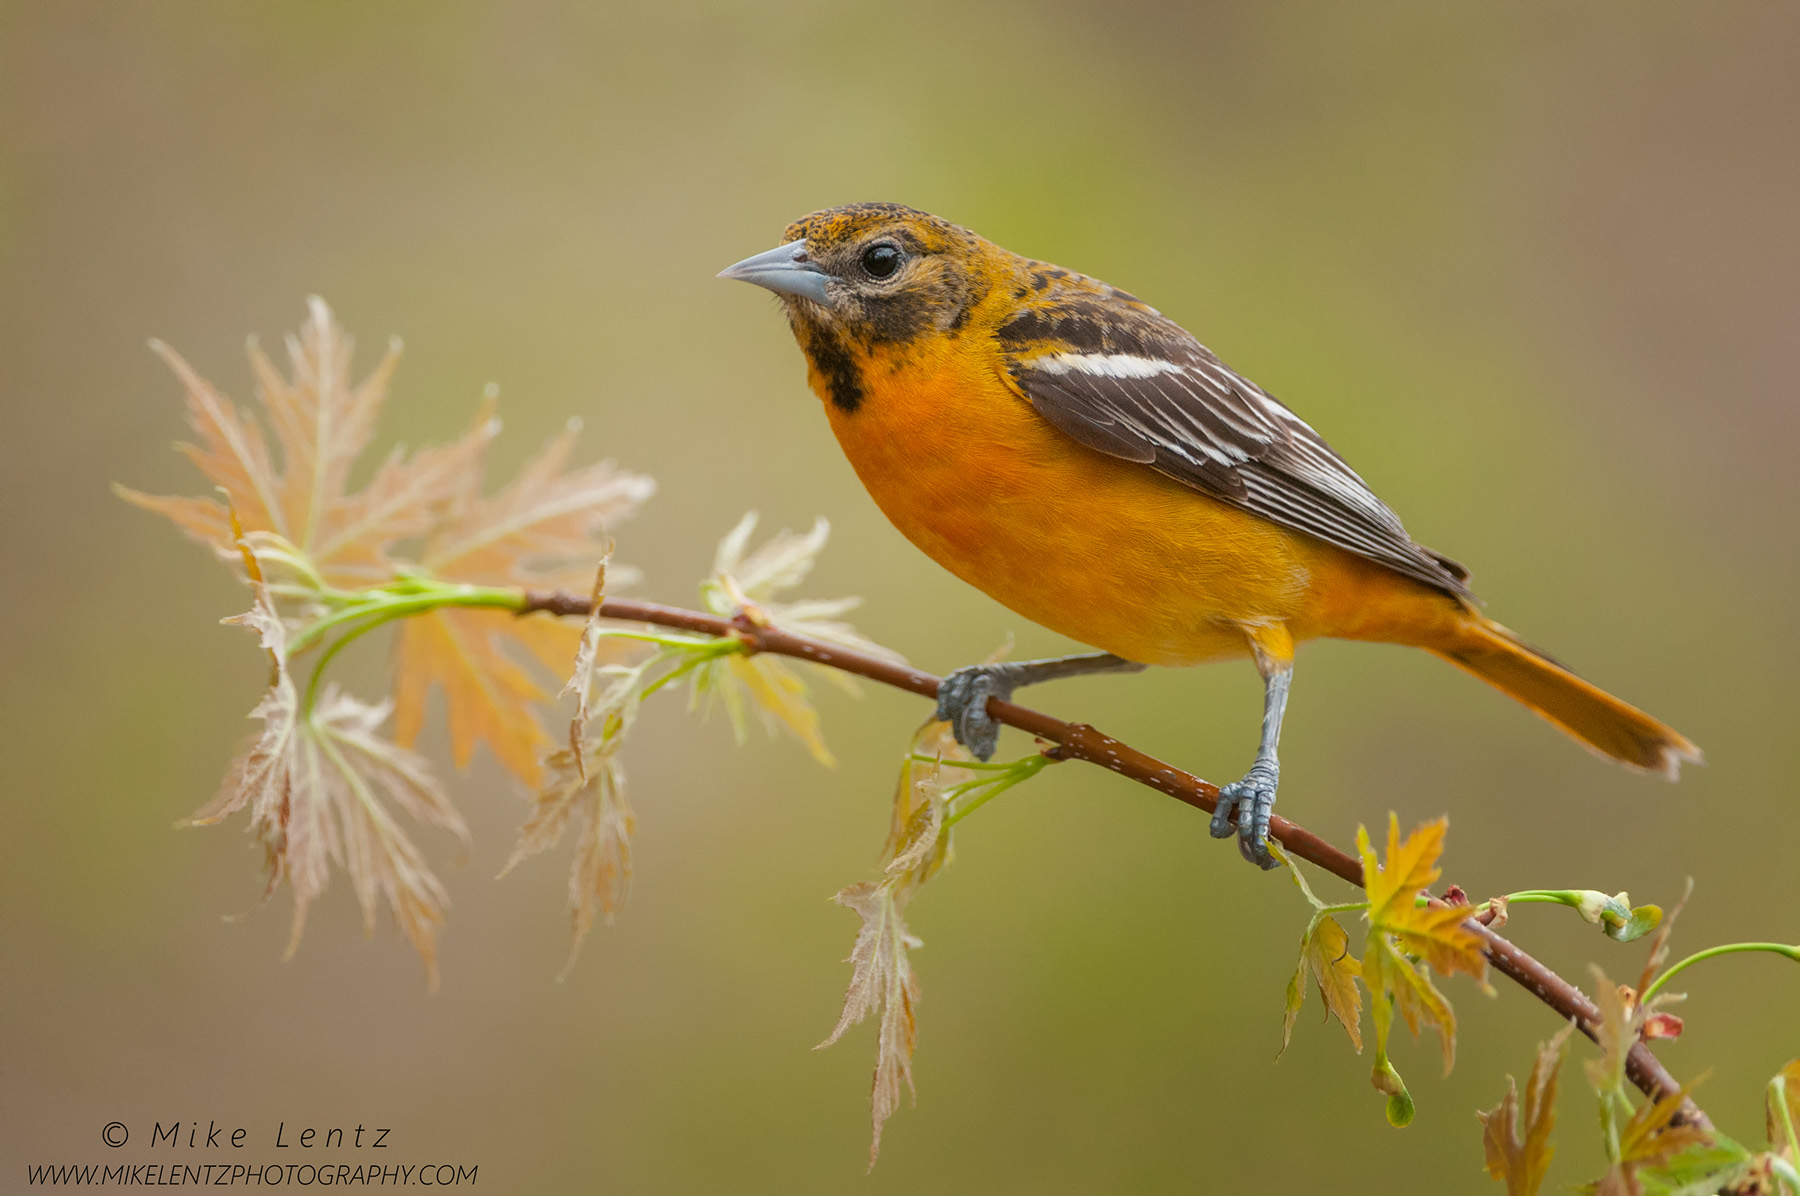 Baltimore Oriole on emerging Elm branchPS2